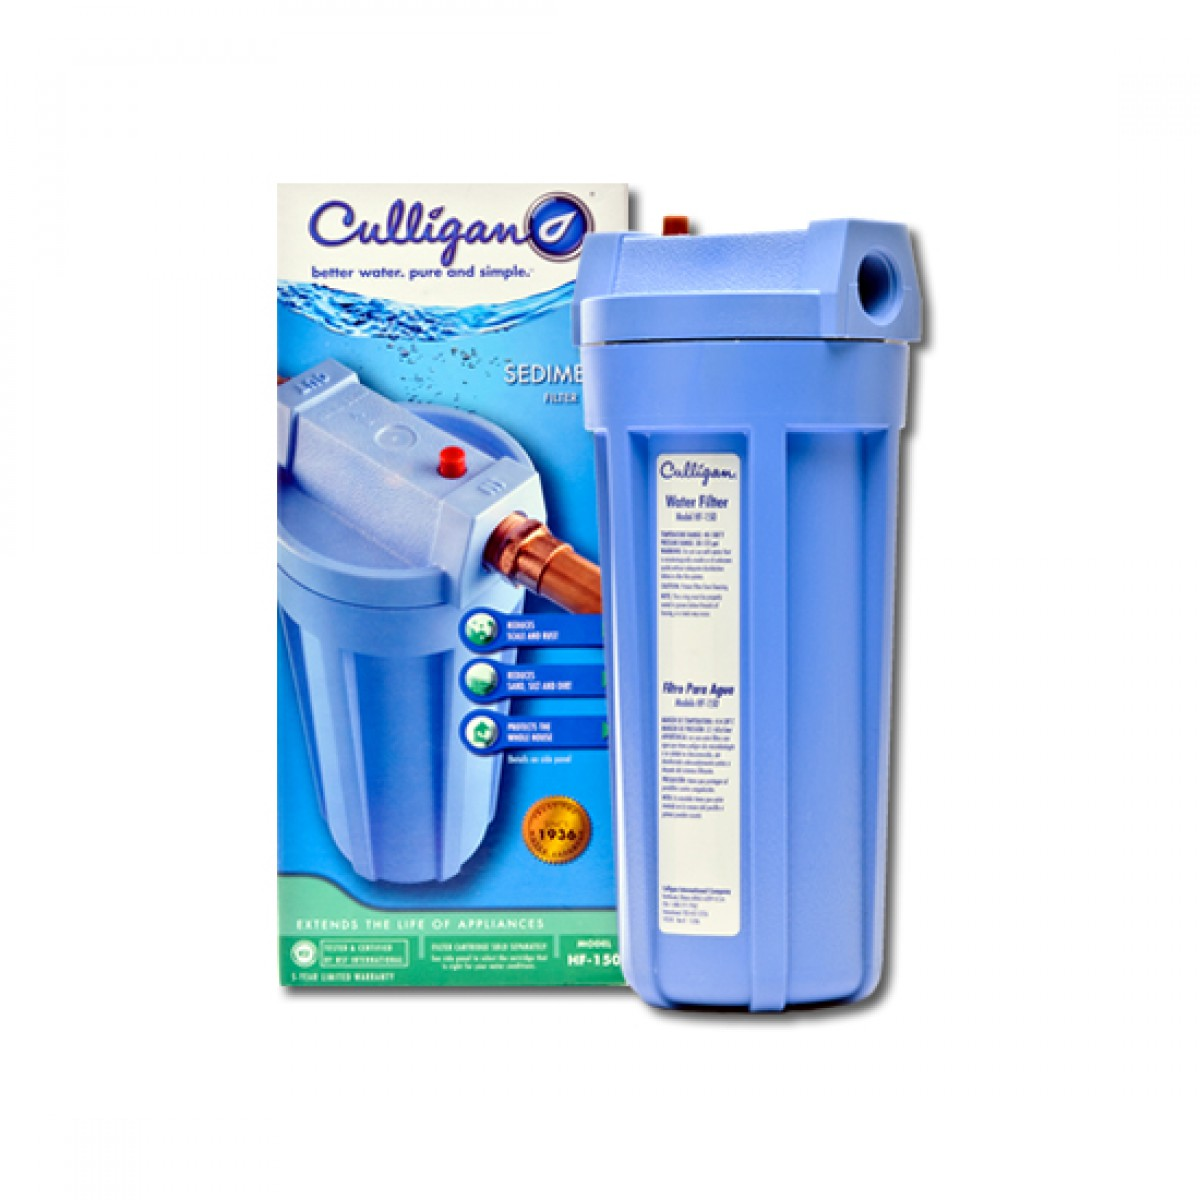 Culligan Hf 150a Whole House Water Filter Housing